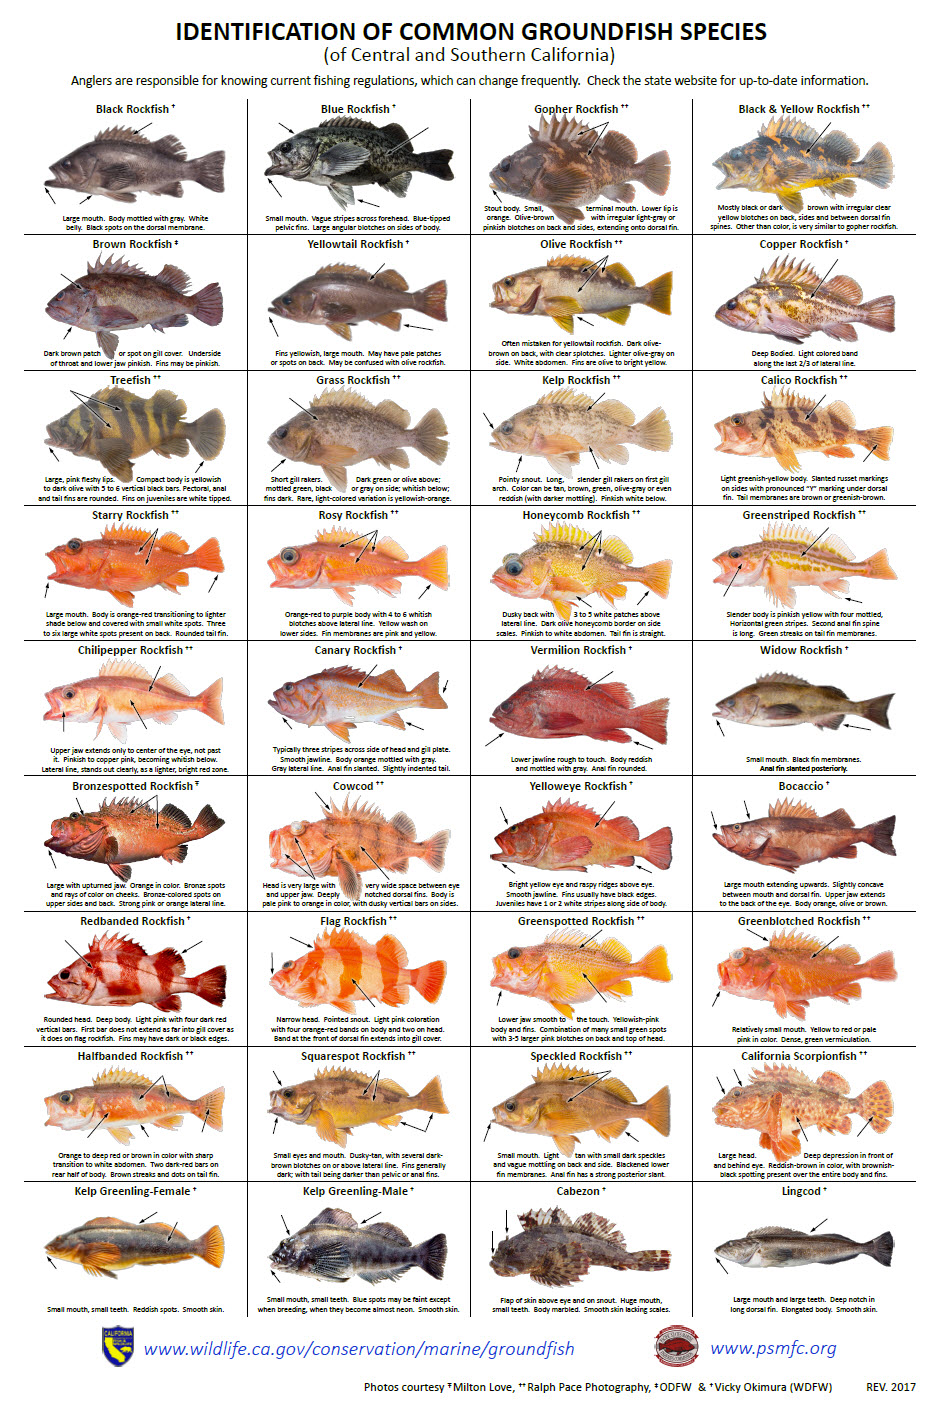 Rockfish Identification - Common Groundfish Species of Central and Southern California